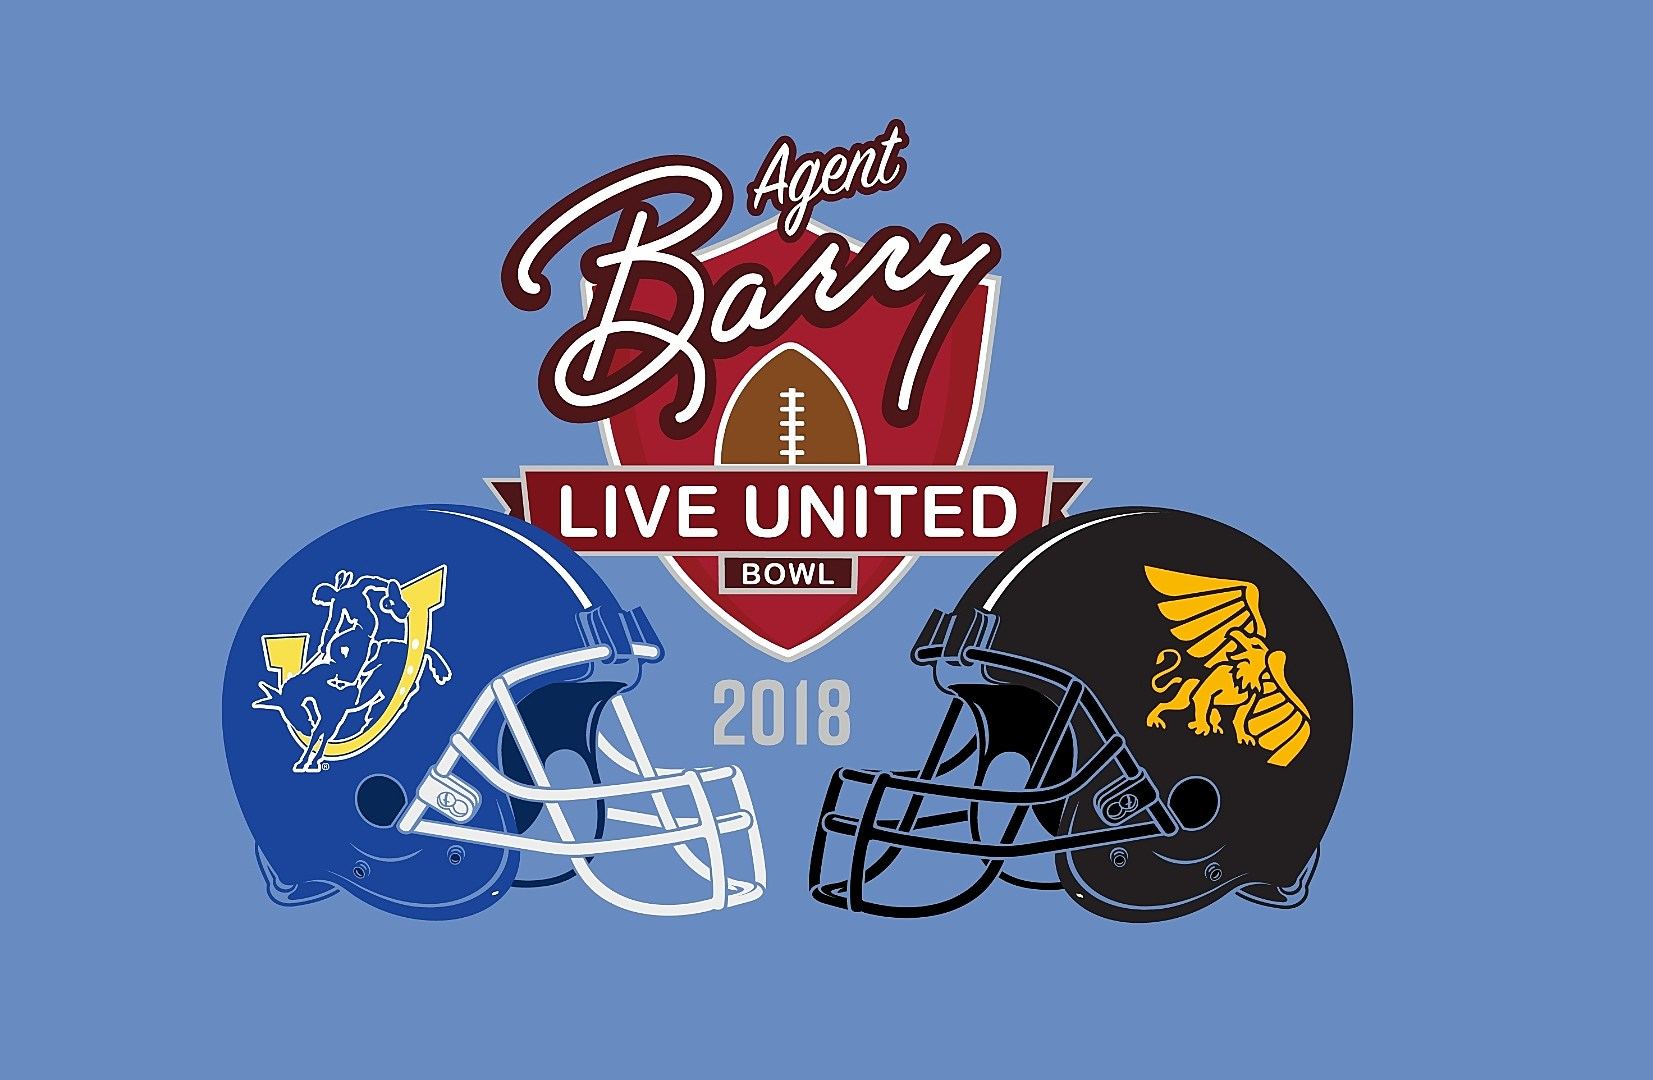 8f493677c4f Agent Barry  Live United Bowl  2018 - Schedule For The Week